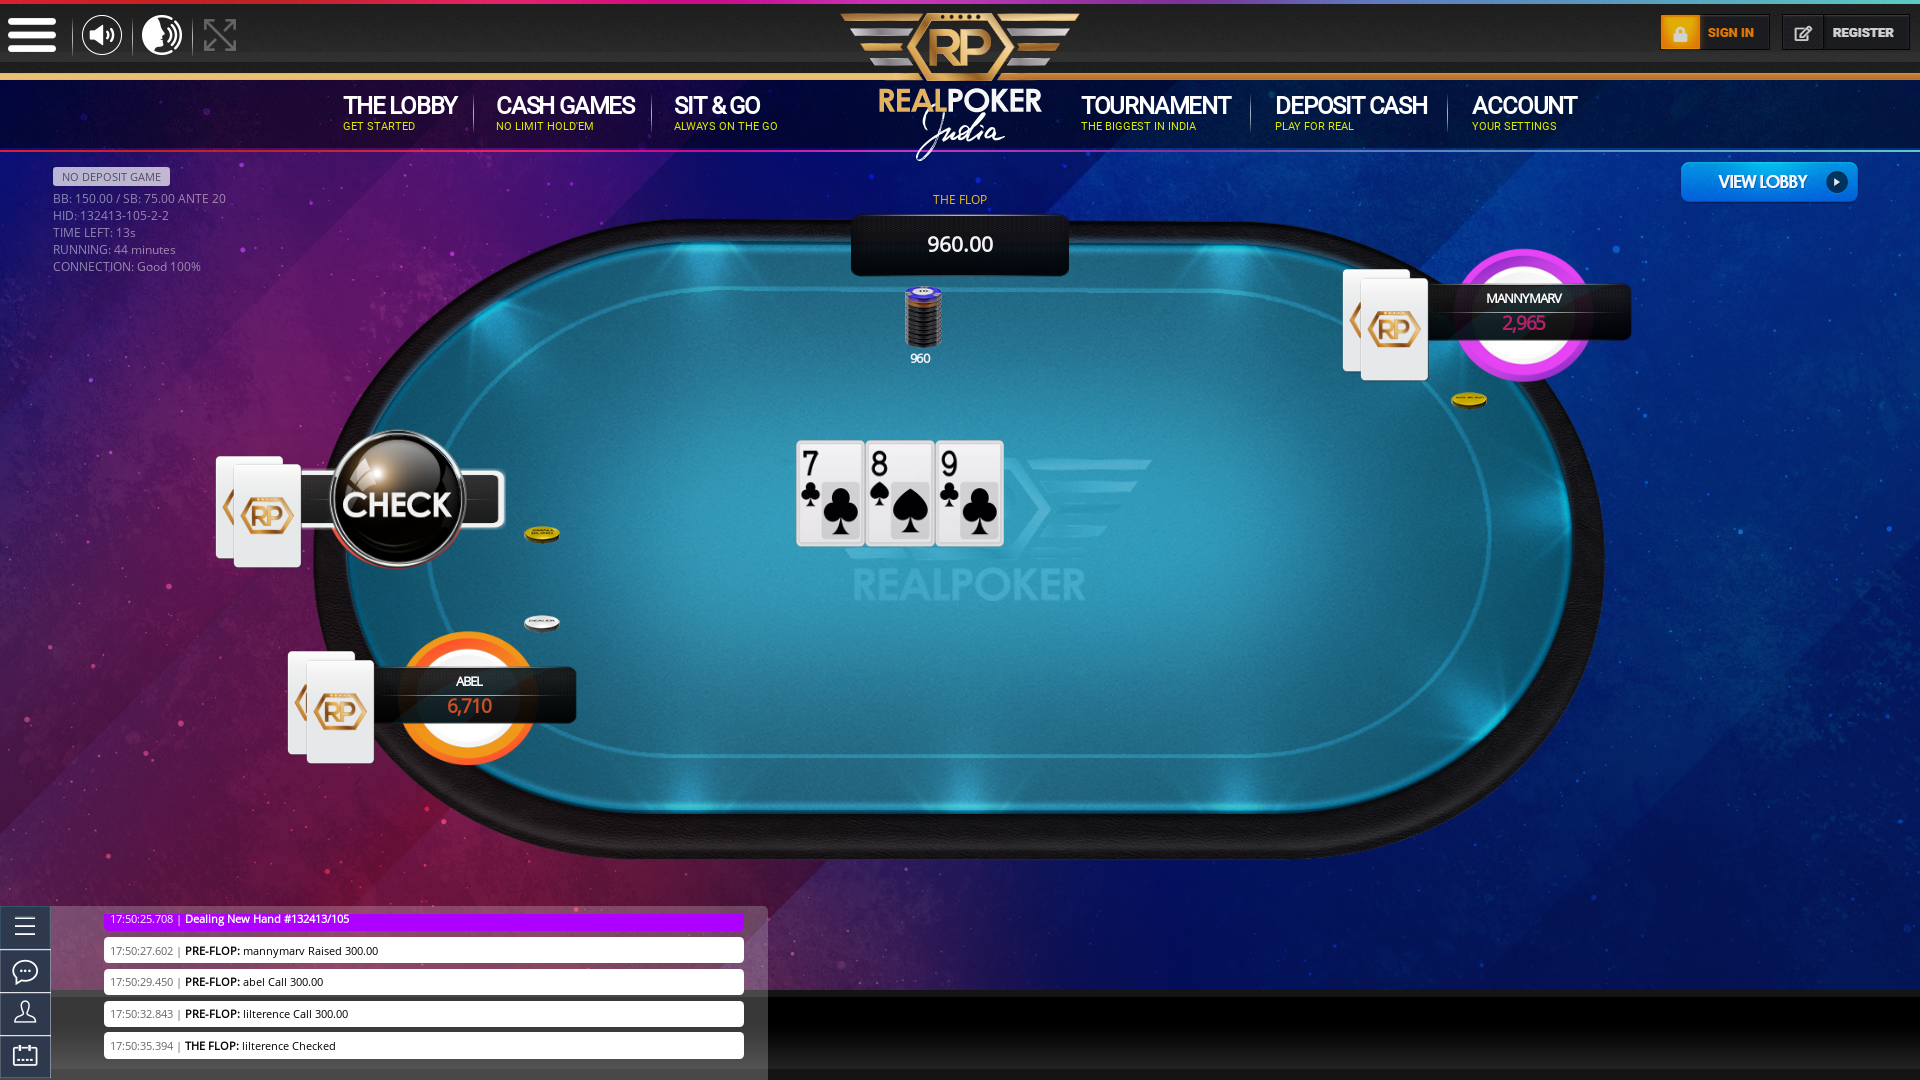 Indian 10 player poker in the 44th minute